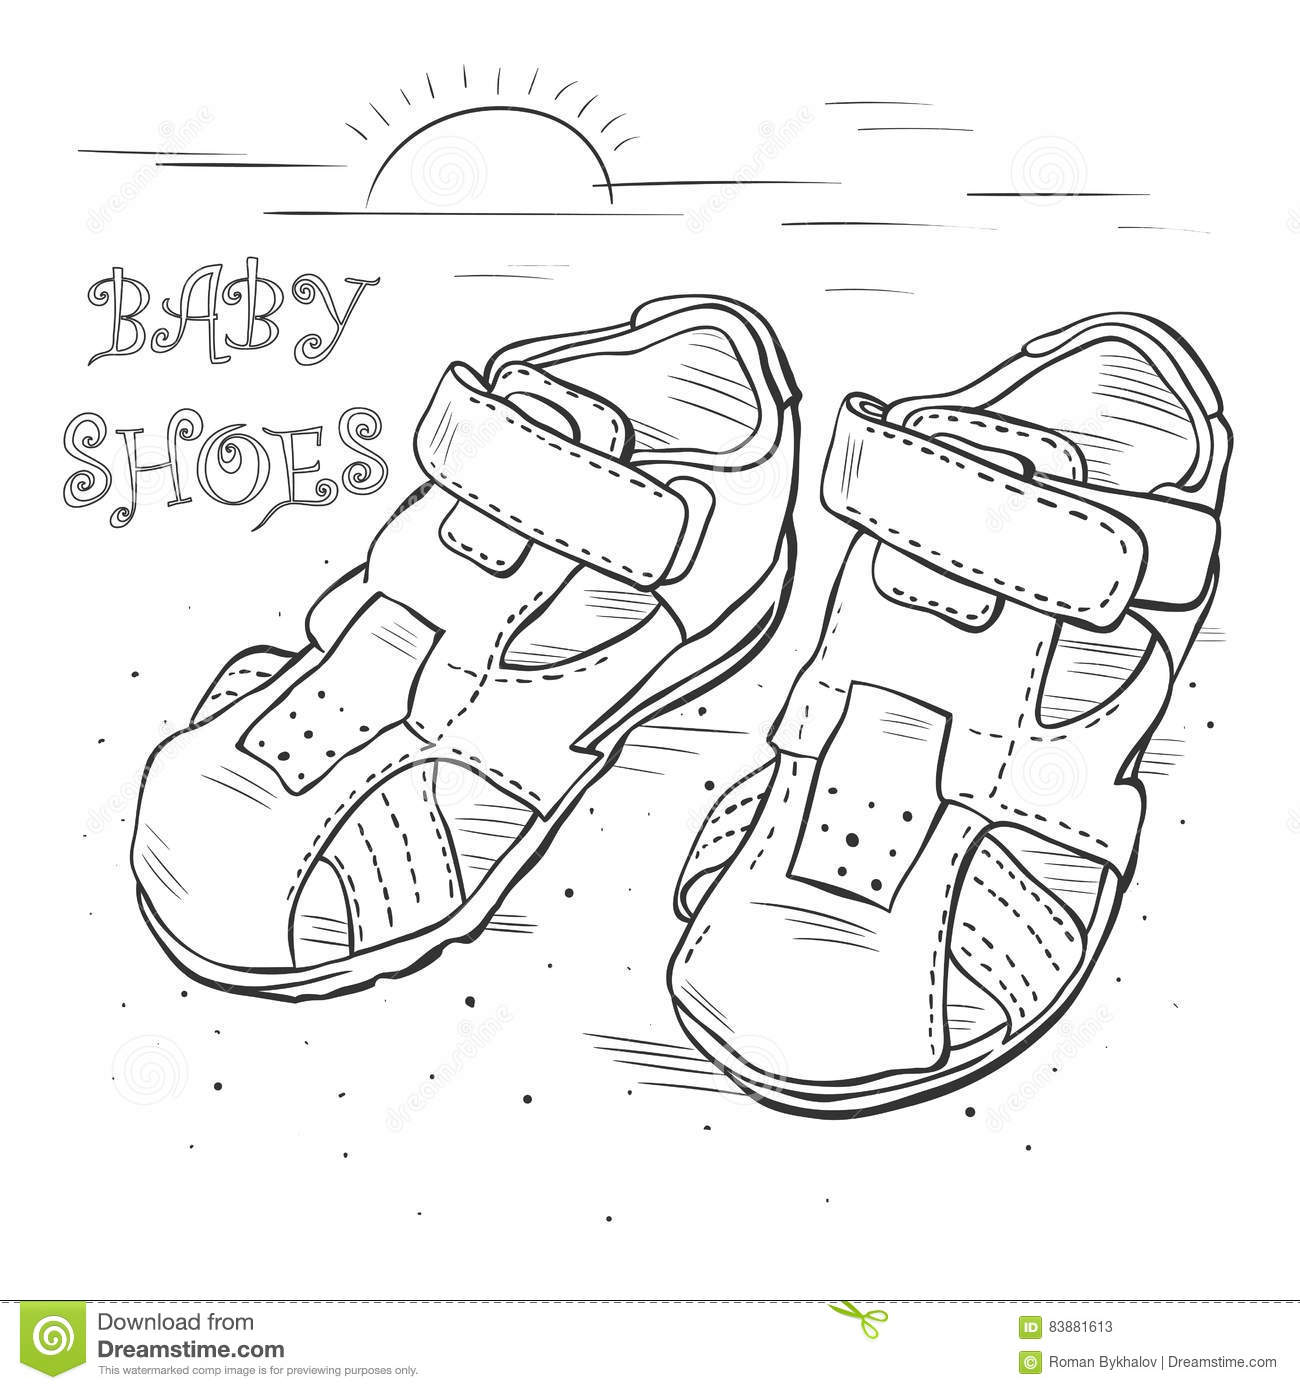 d3c9c1118ed1c Sketch vector. Children`s sandals for a boy. Shoes. More similar stock  illustrations